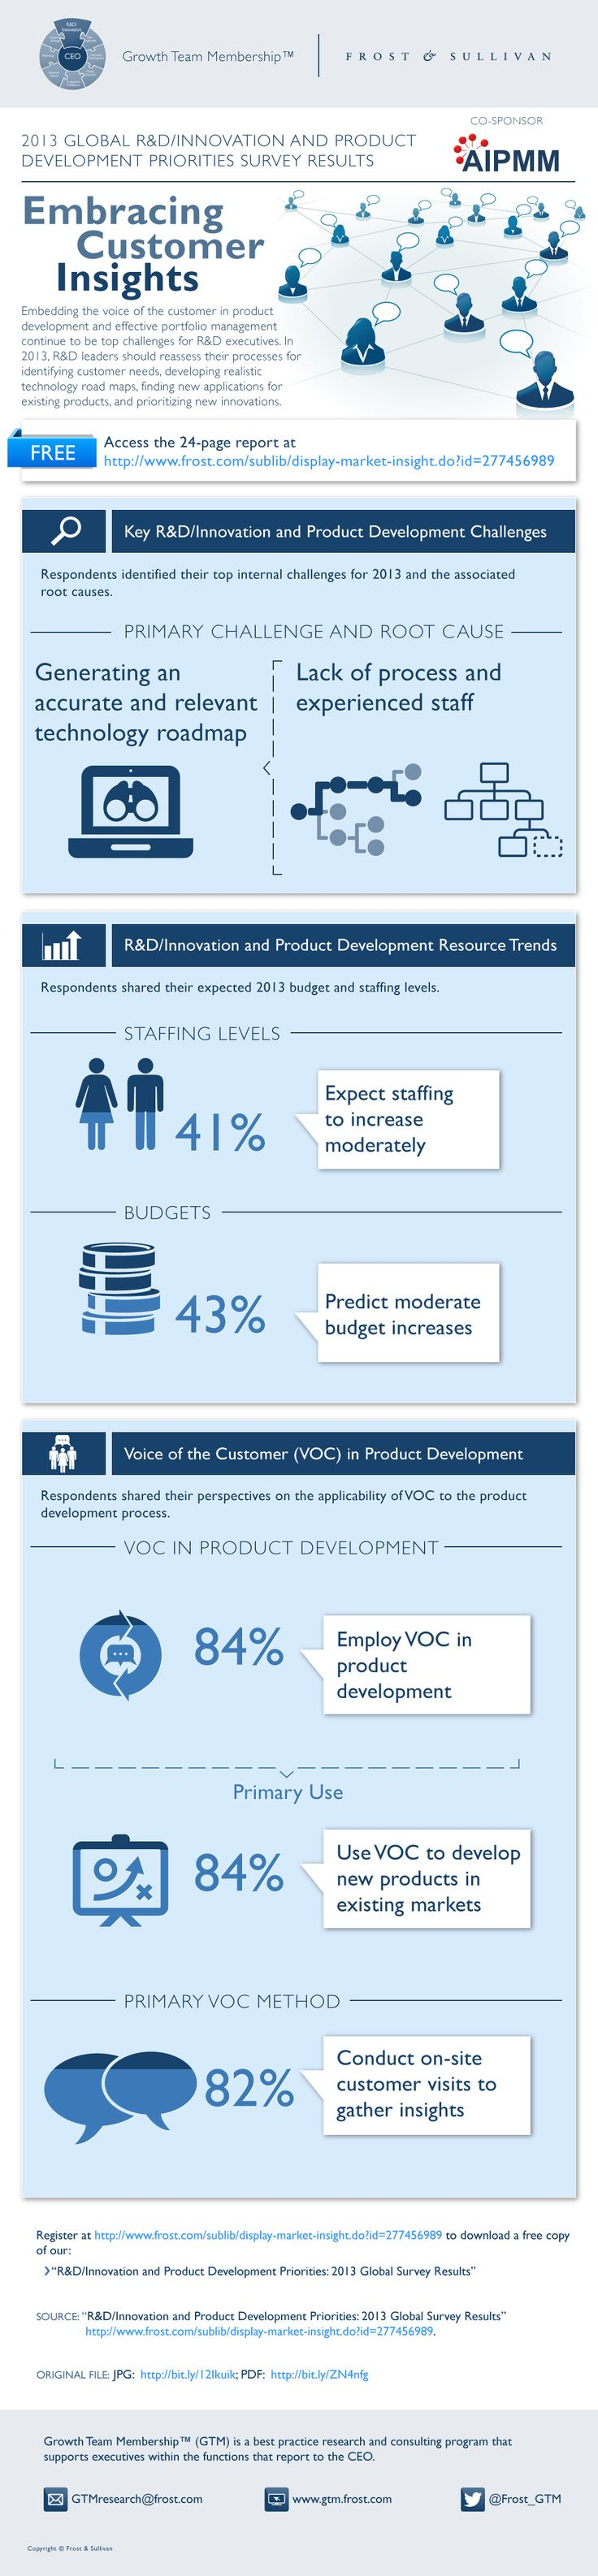 Embedding the voice of the customer in product development and effective portfolio management continue to be top challenges for R executives. In 201